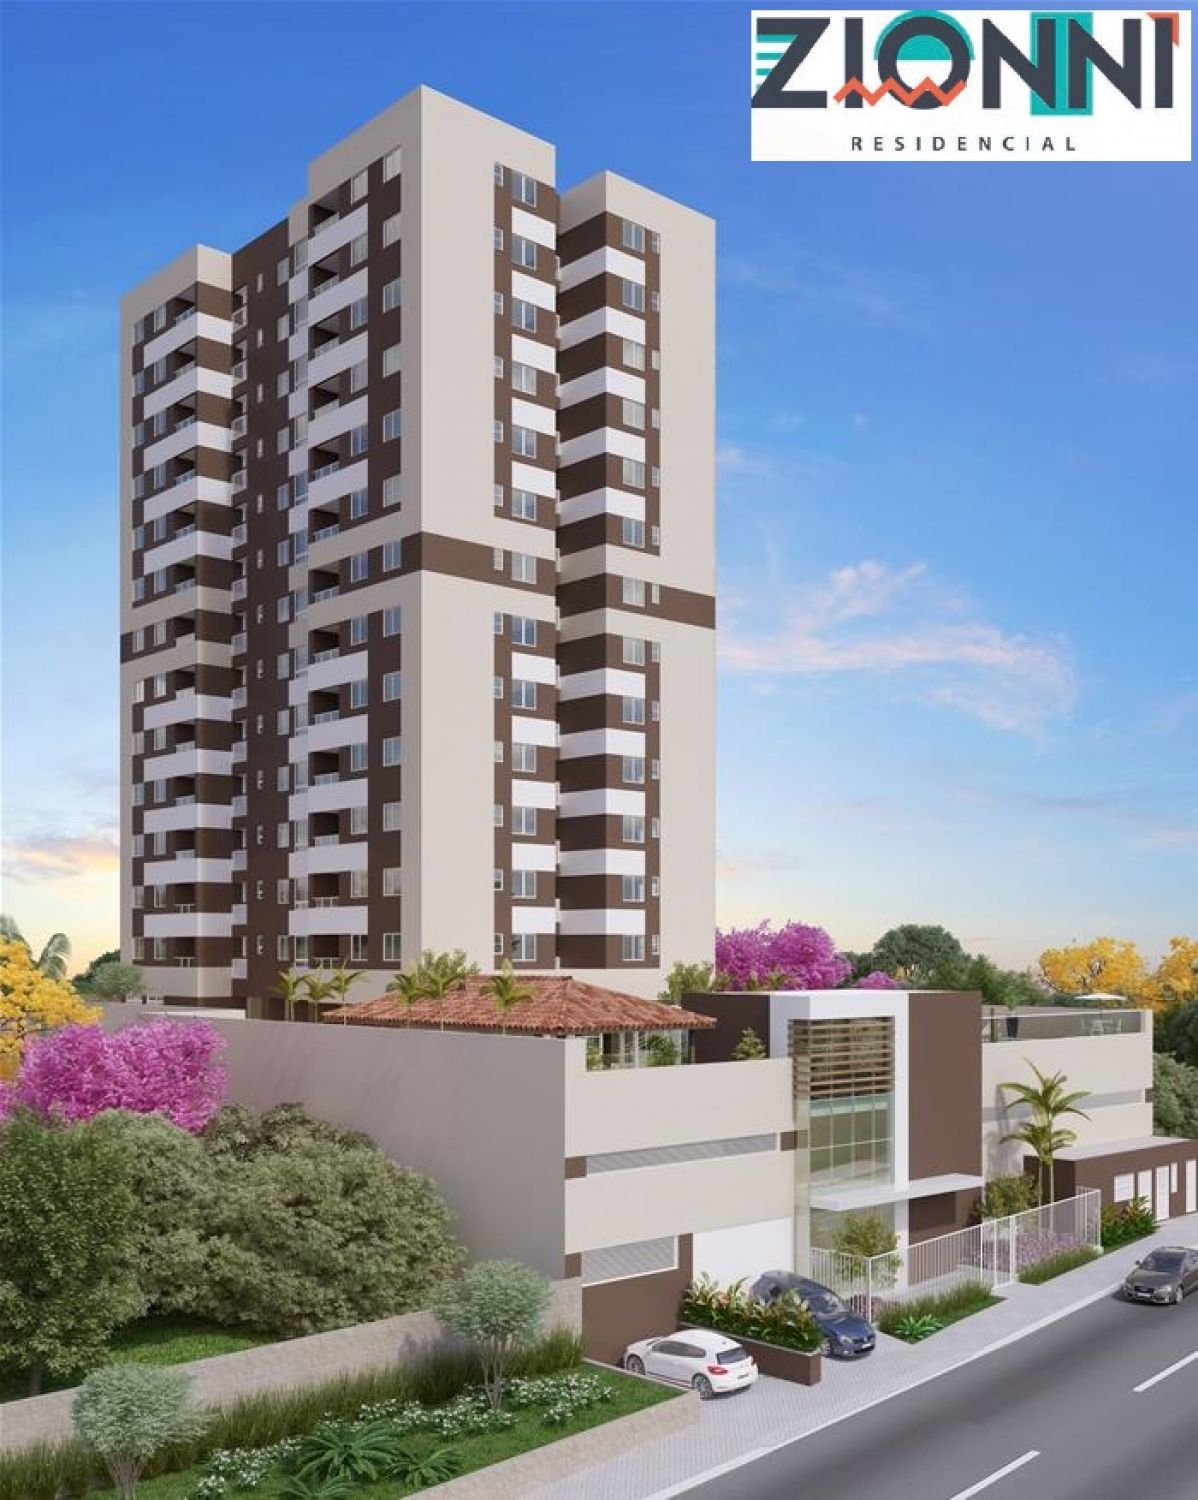 Zionni Residencial